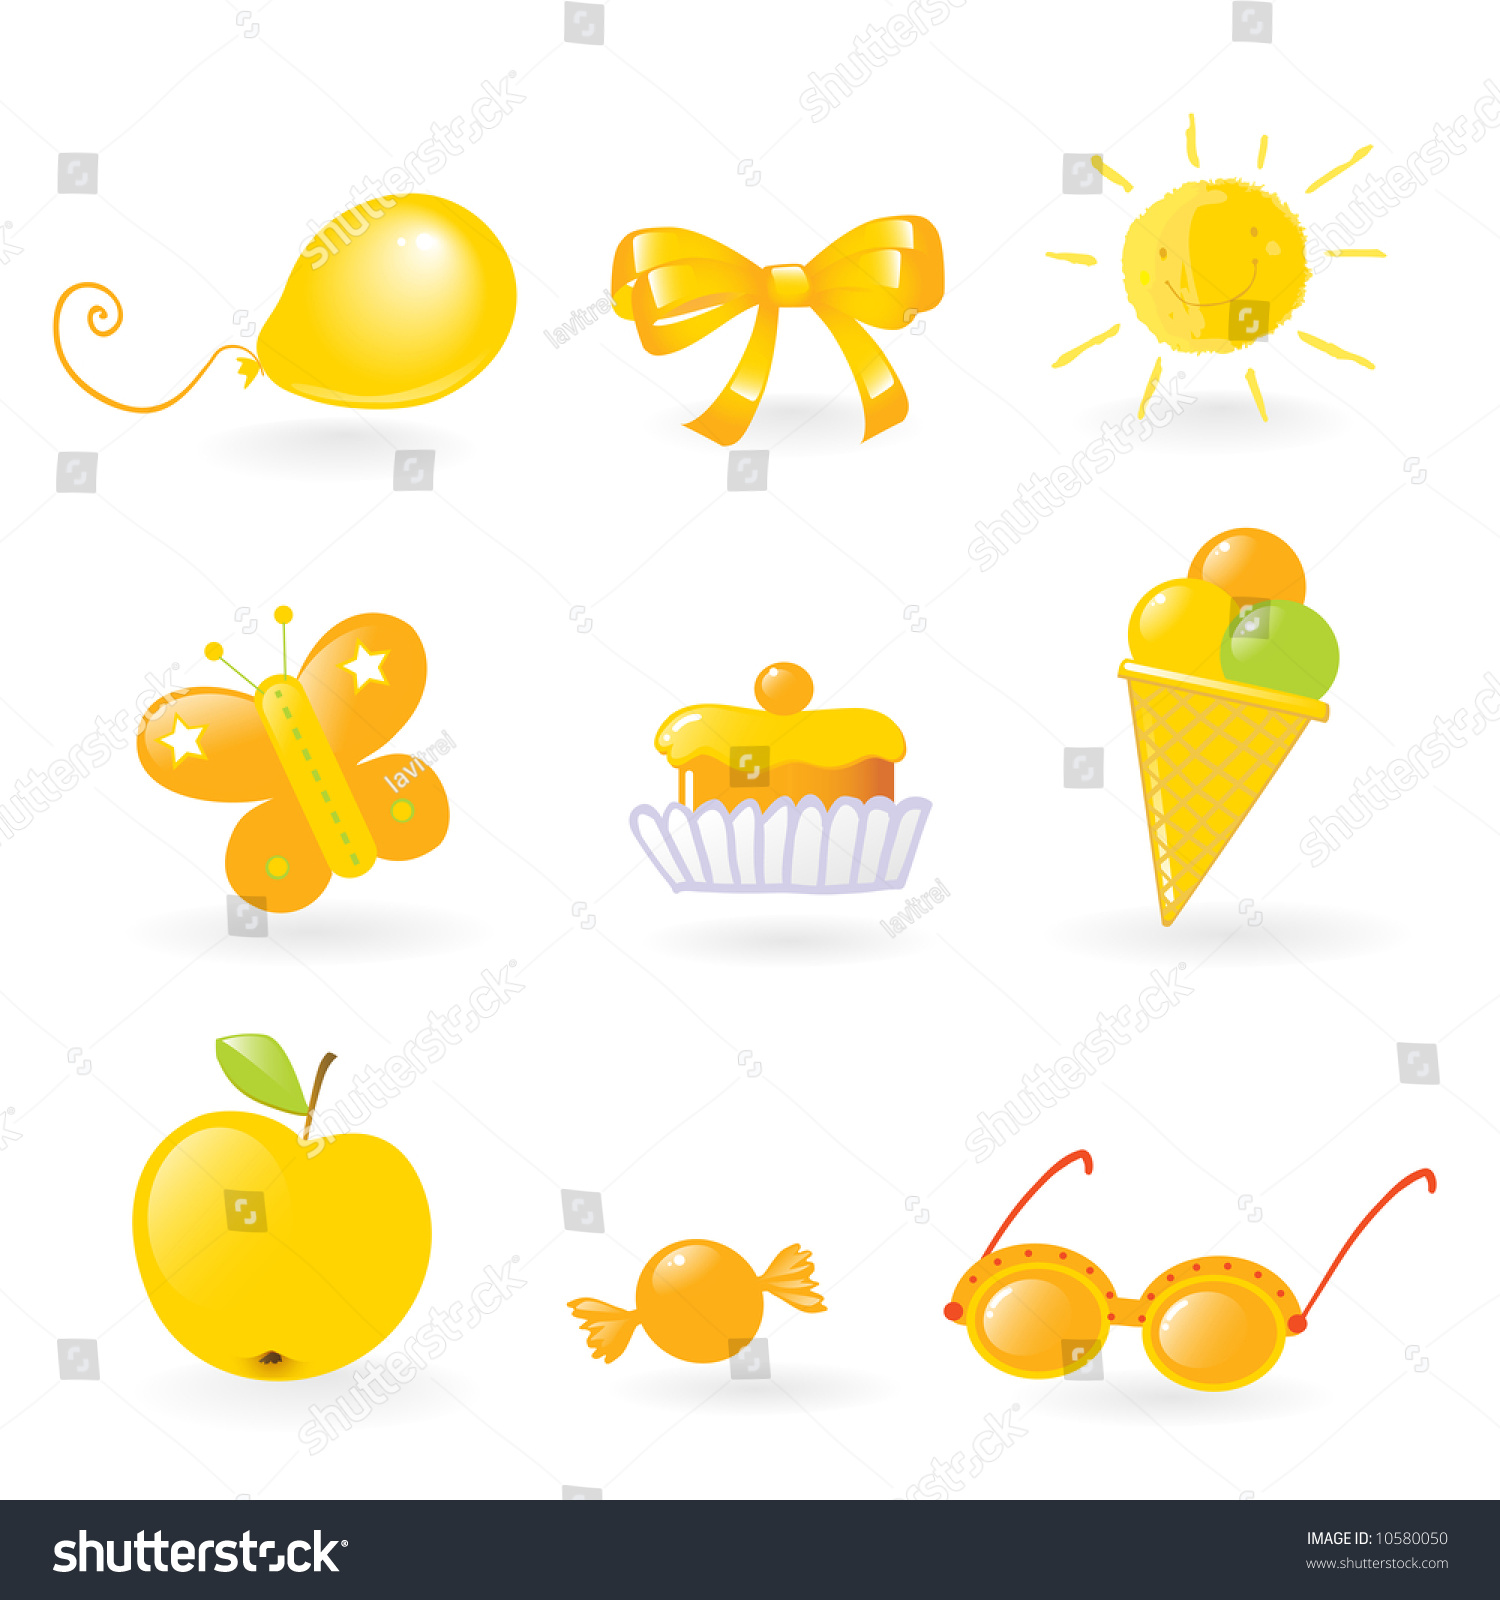 Vector Clip Art Of Different Yellow Colored Objects Set